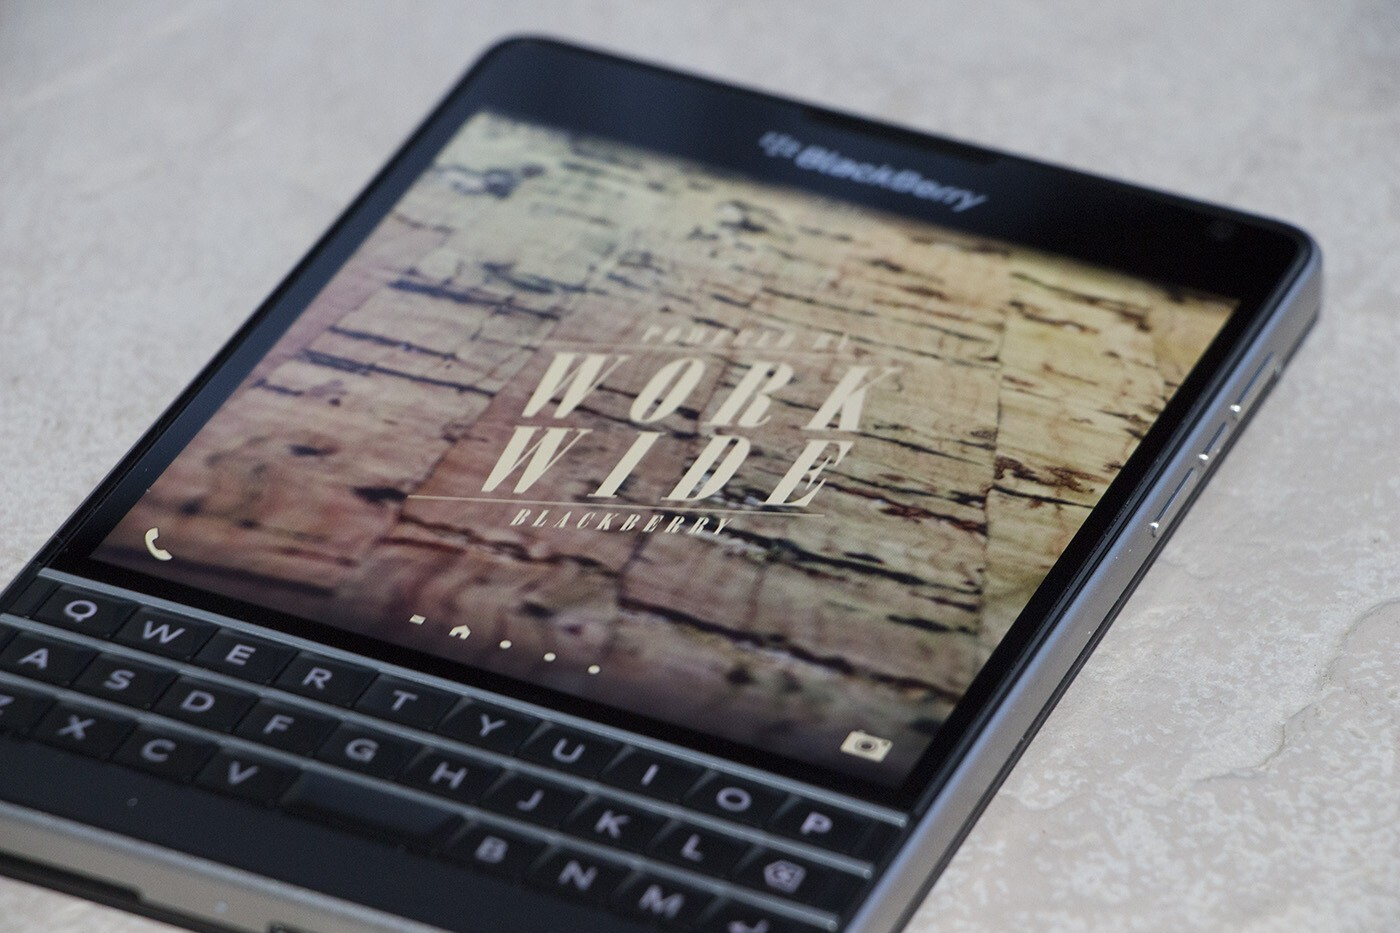 AT&T shaves $100 off their BlackBerry Passport pricing